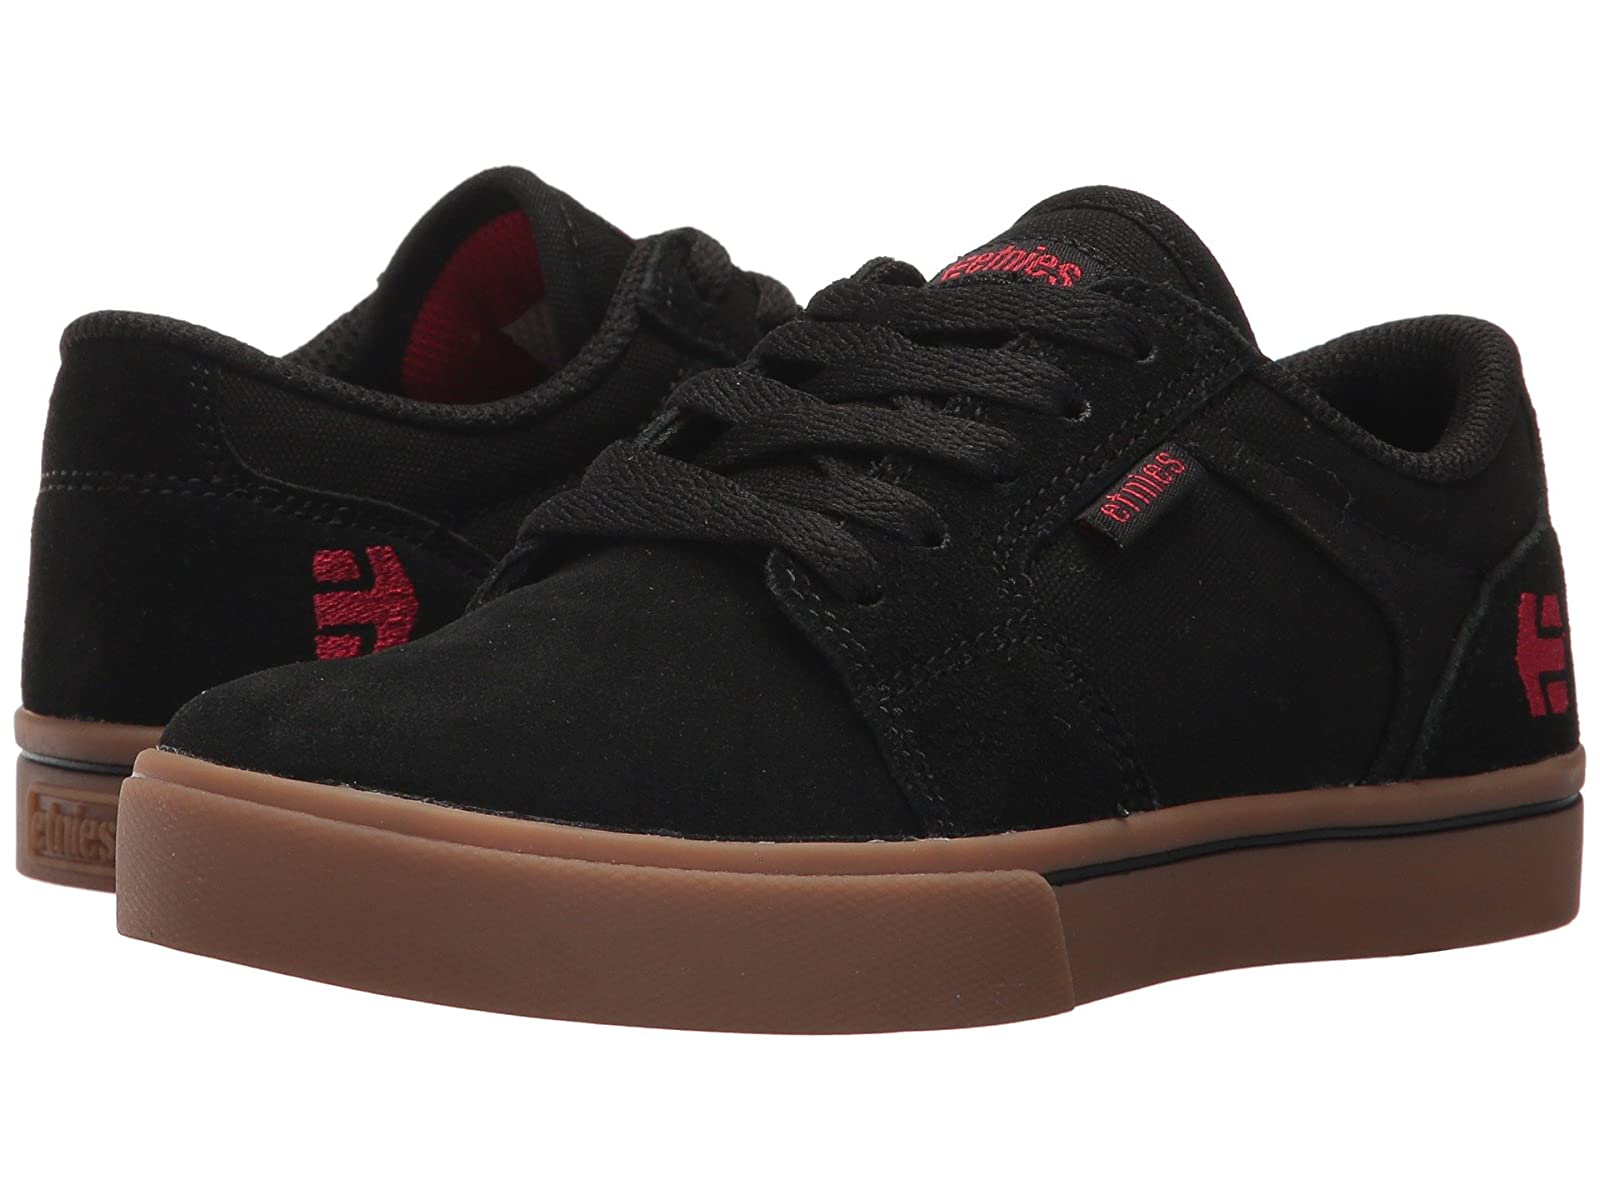 etnies Kids Barge LS (Toddler/Little Kid/Big Kid)Atmospheric grades have affordable shoes